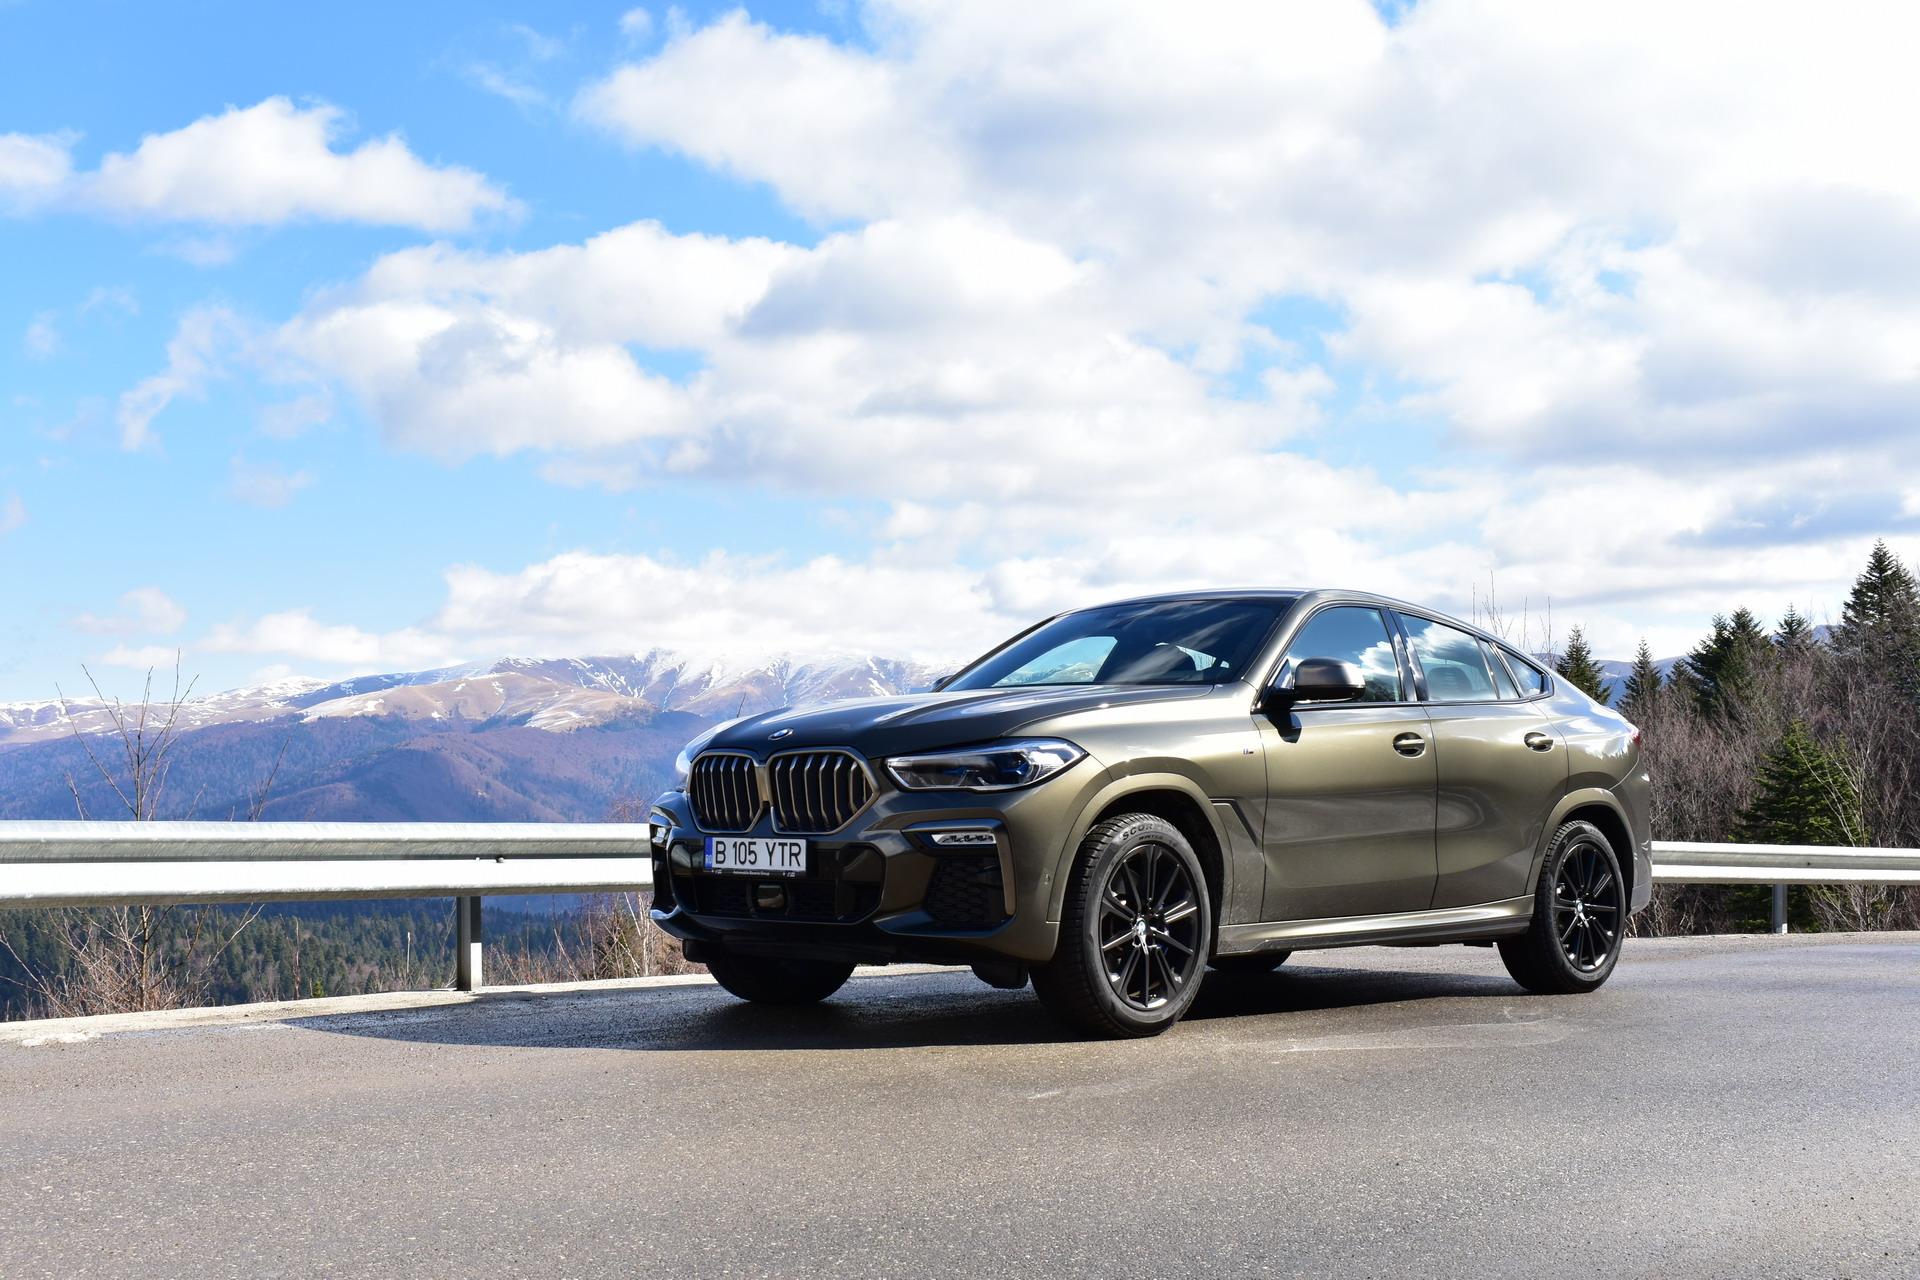 BMW X6 M50d TEST DRIVE RO SET 2 2